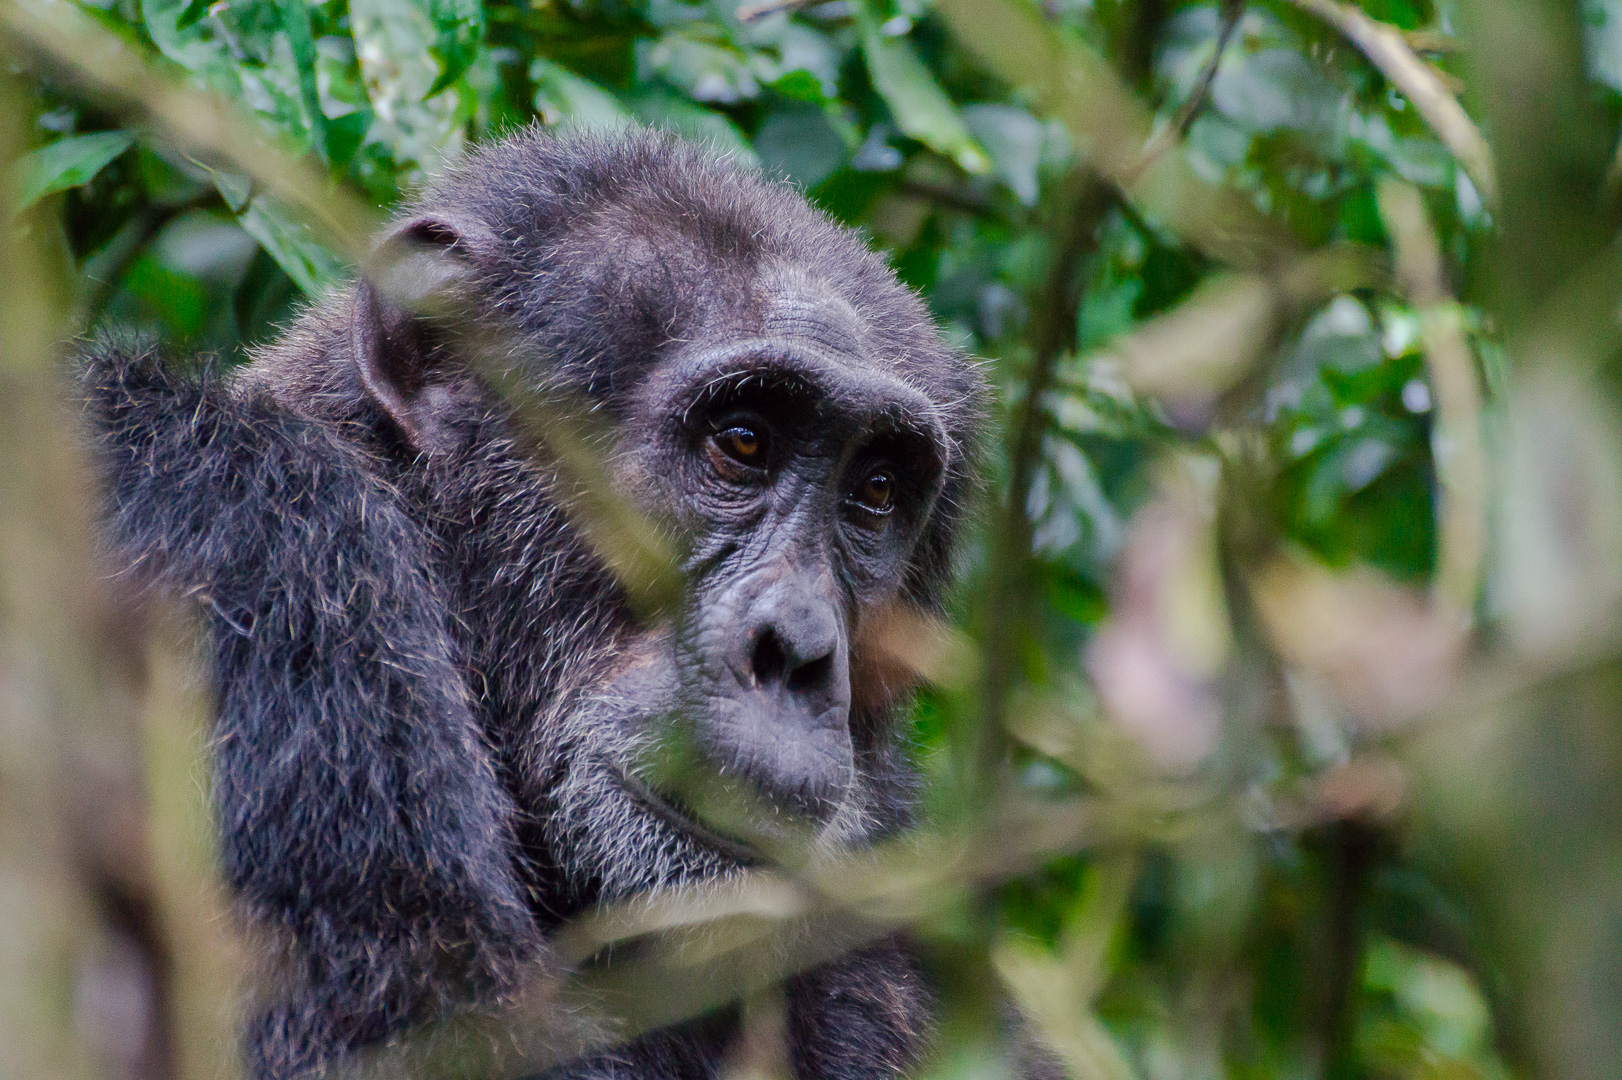 Chimp Tracking - Kibale National Park is best known for its 13 different types of primates and chimpanzee tracking.For more information contact Uganda Wildlife Authority www.uwa.or.ug